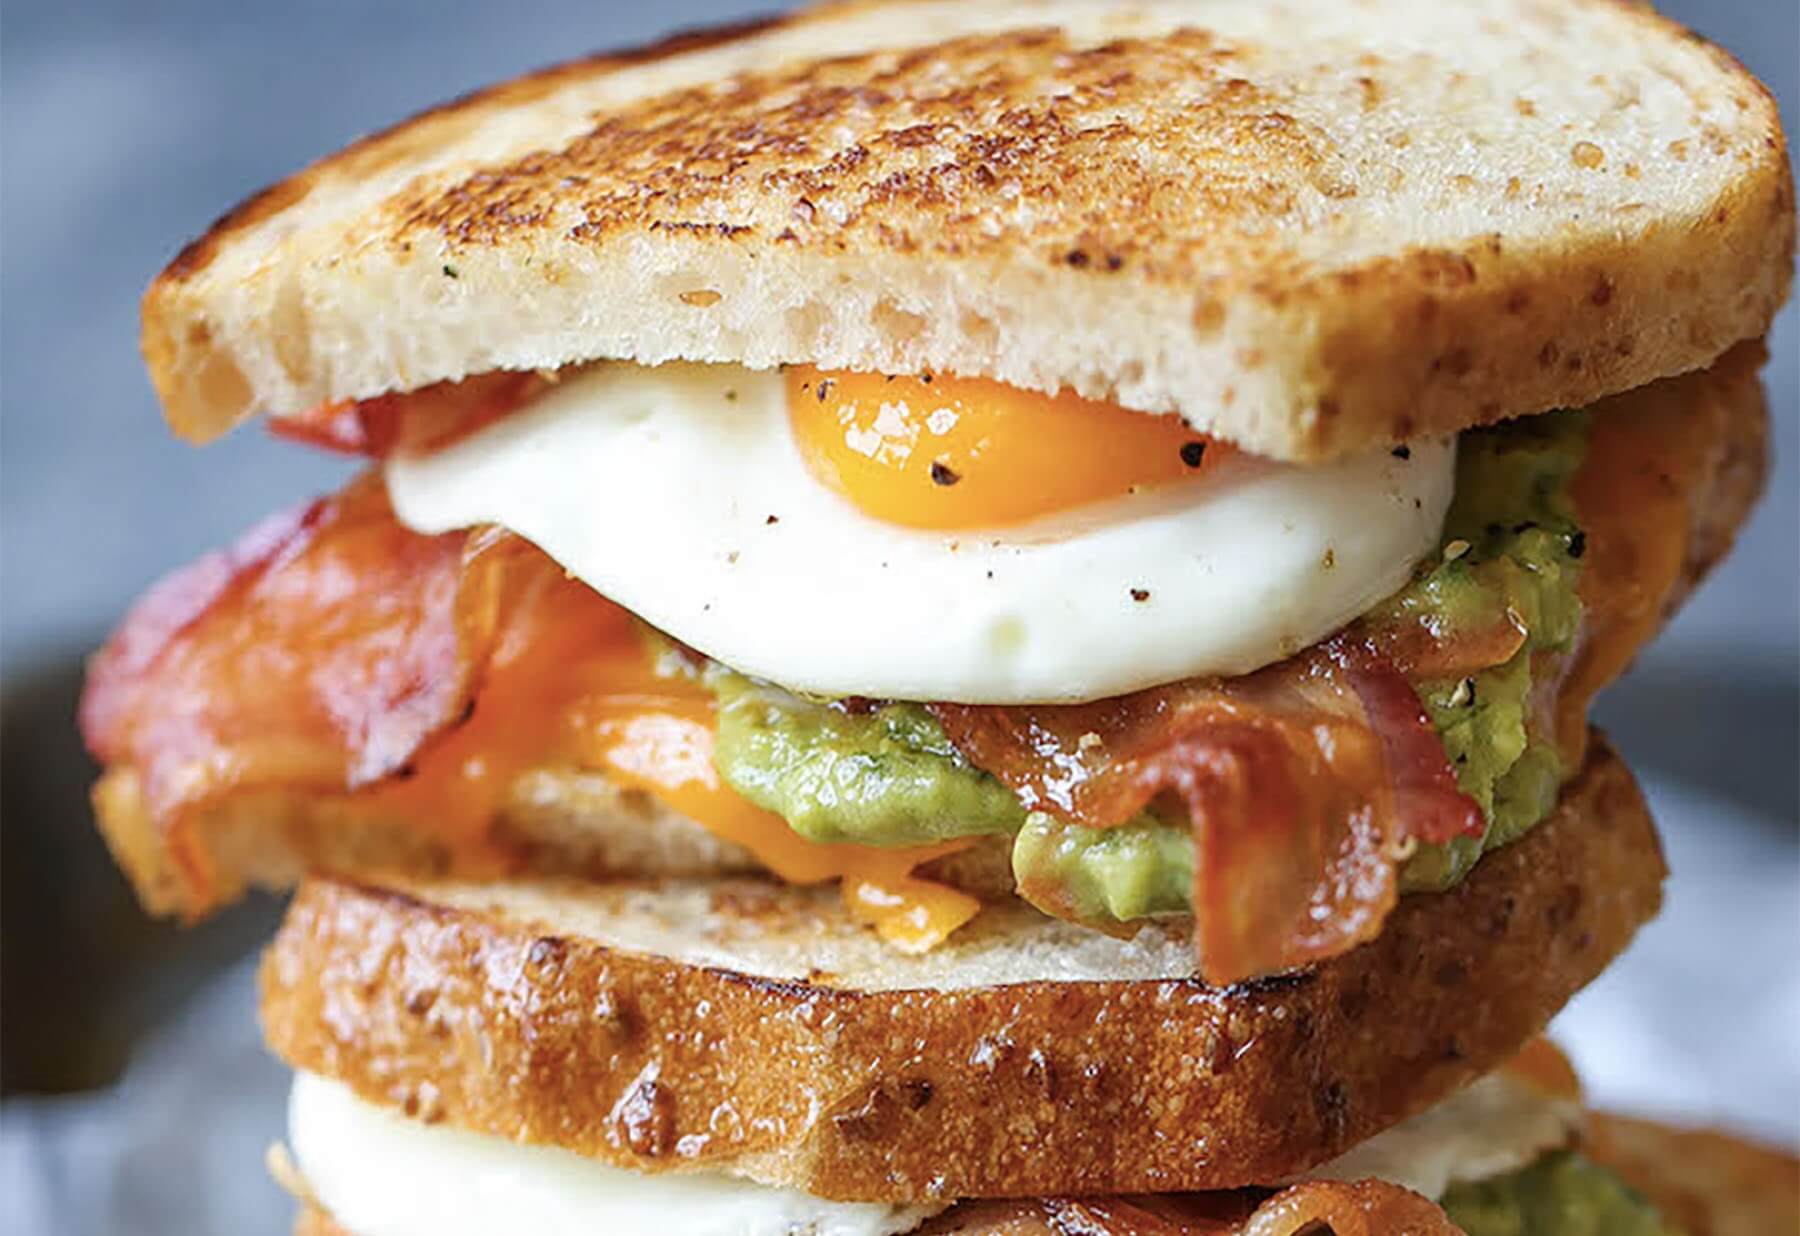 Best Breakfast Sandwich Recipes That Are Actually Healthy